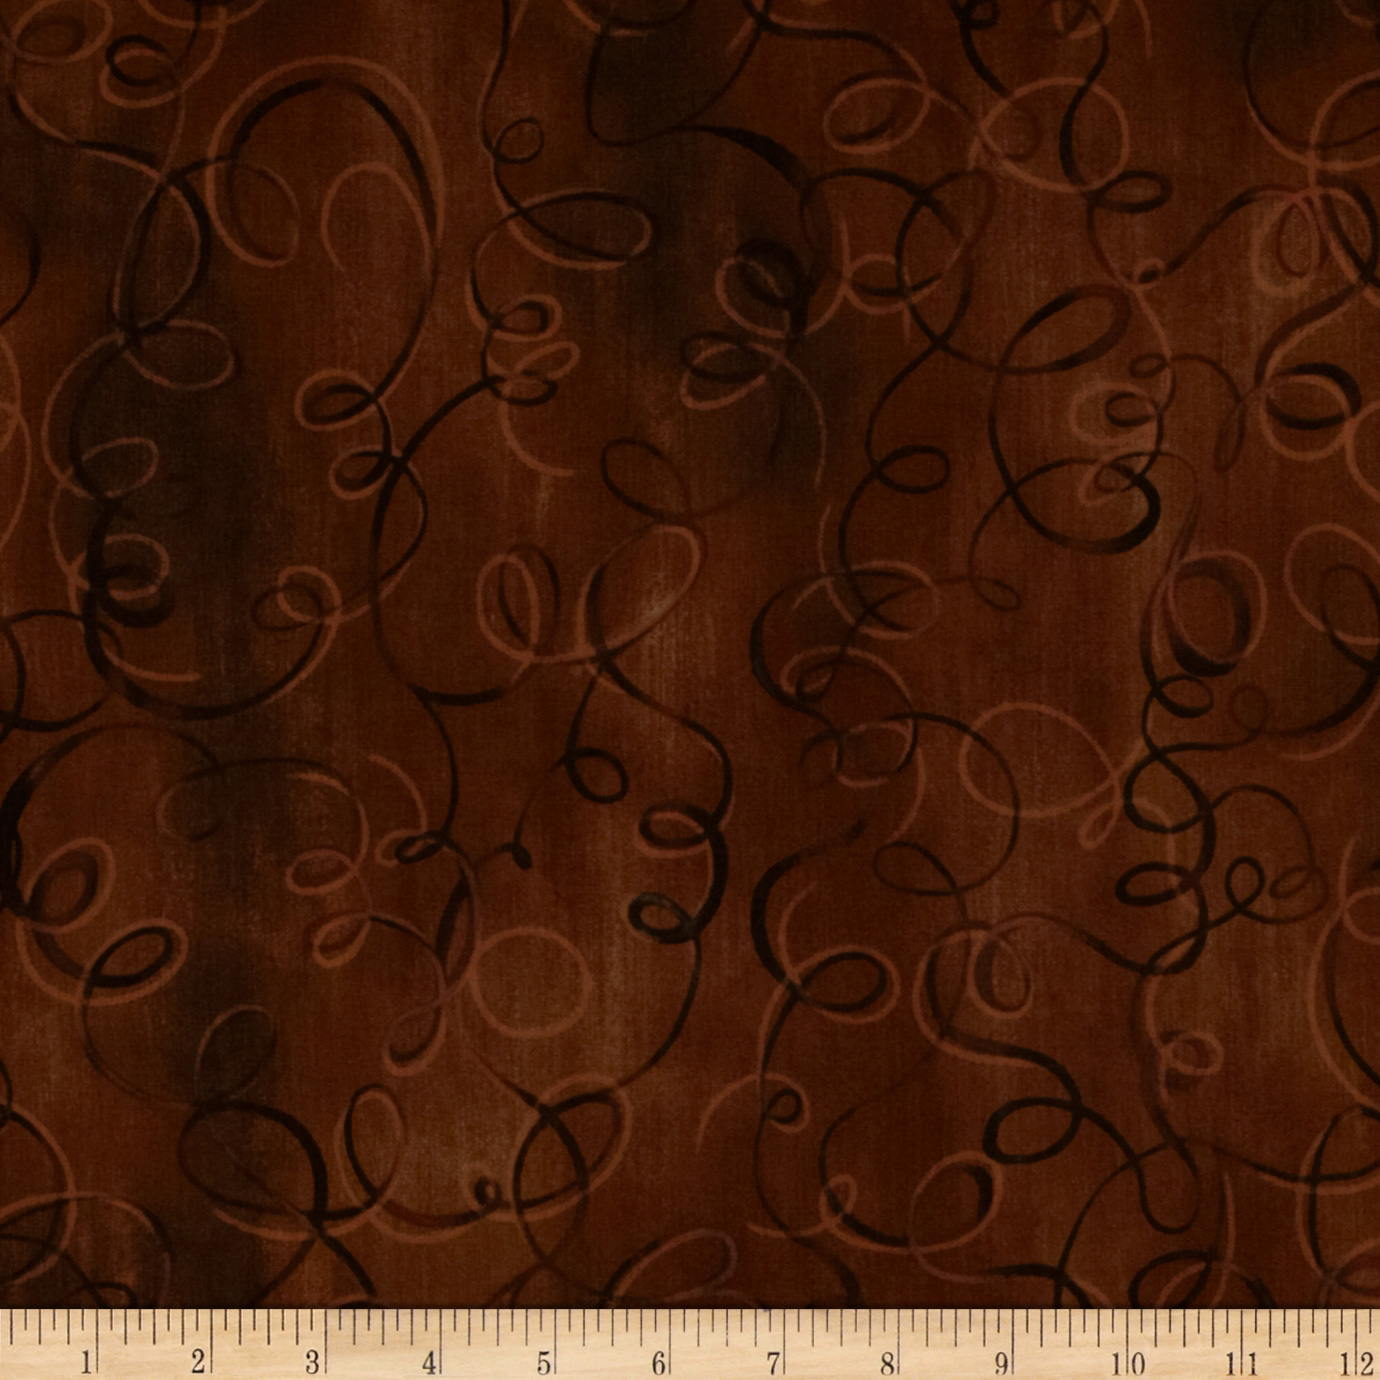 Studio Stash Tonal Swirl Cinnamon Fabric